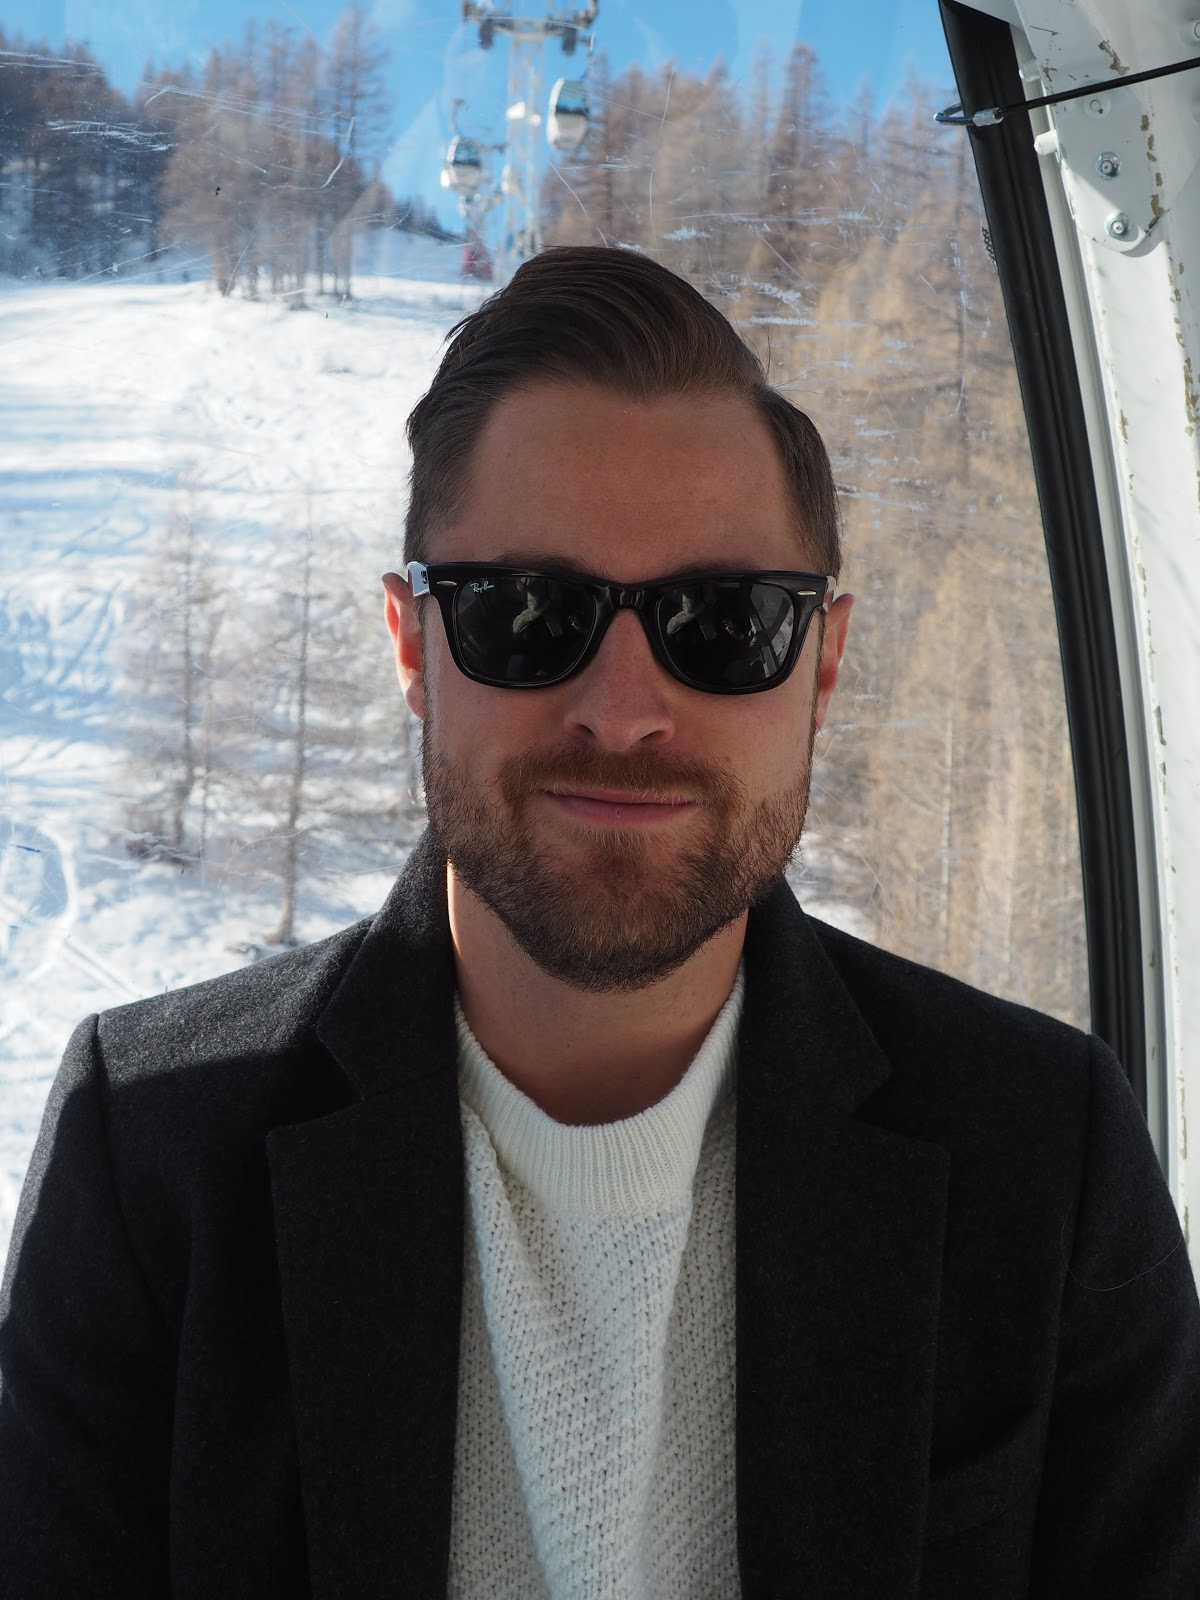 Man wearing ray ban sunglasses in a cable car against snowy mountains